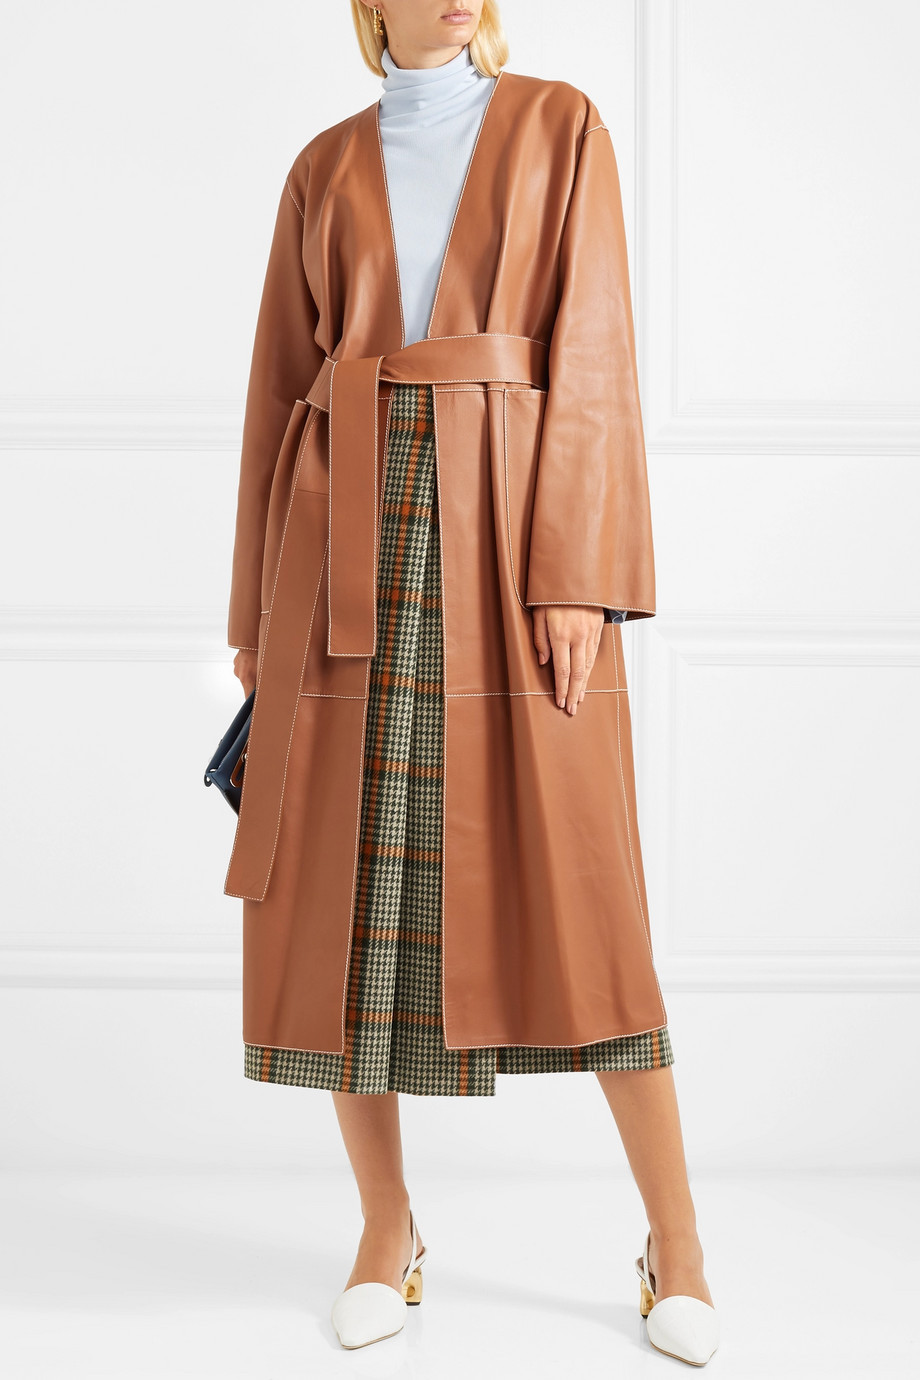 Loewe Belted leather coat $4,890